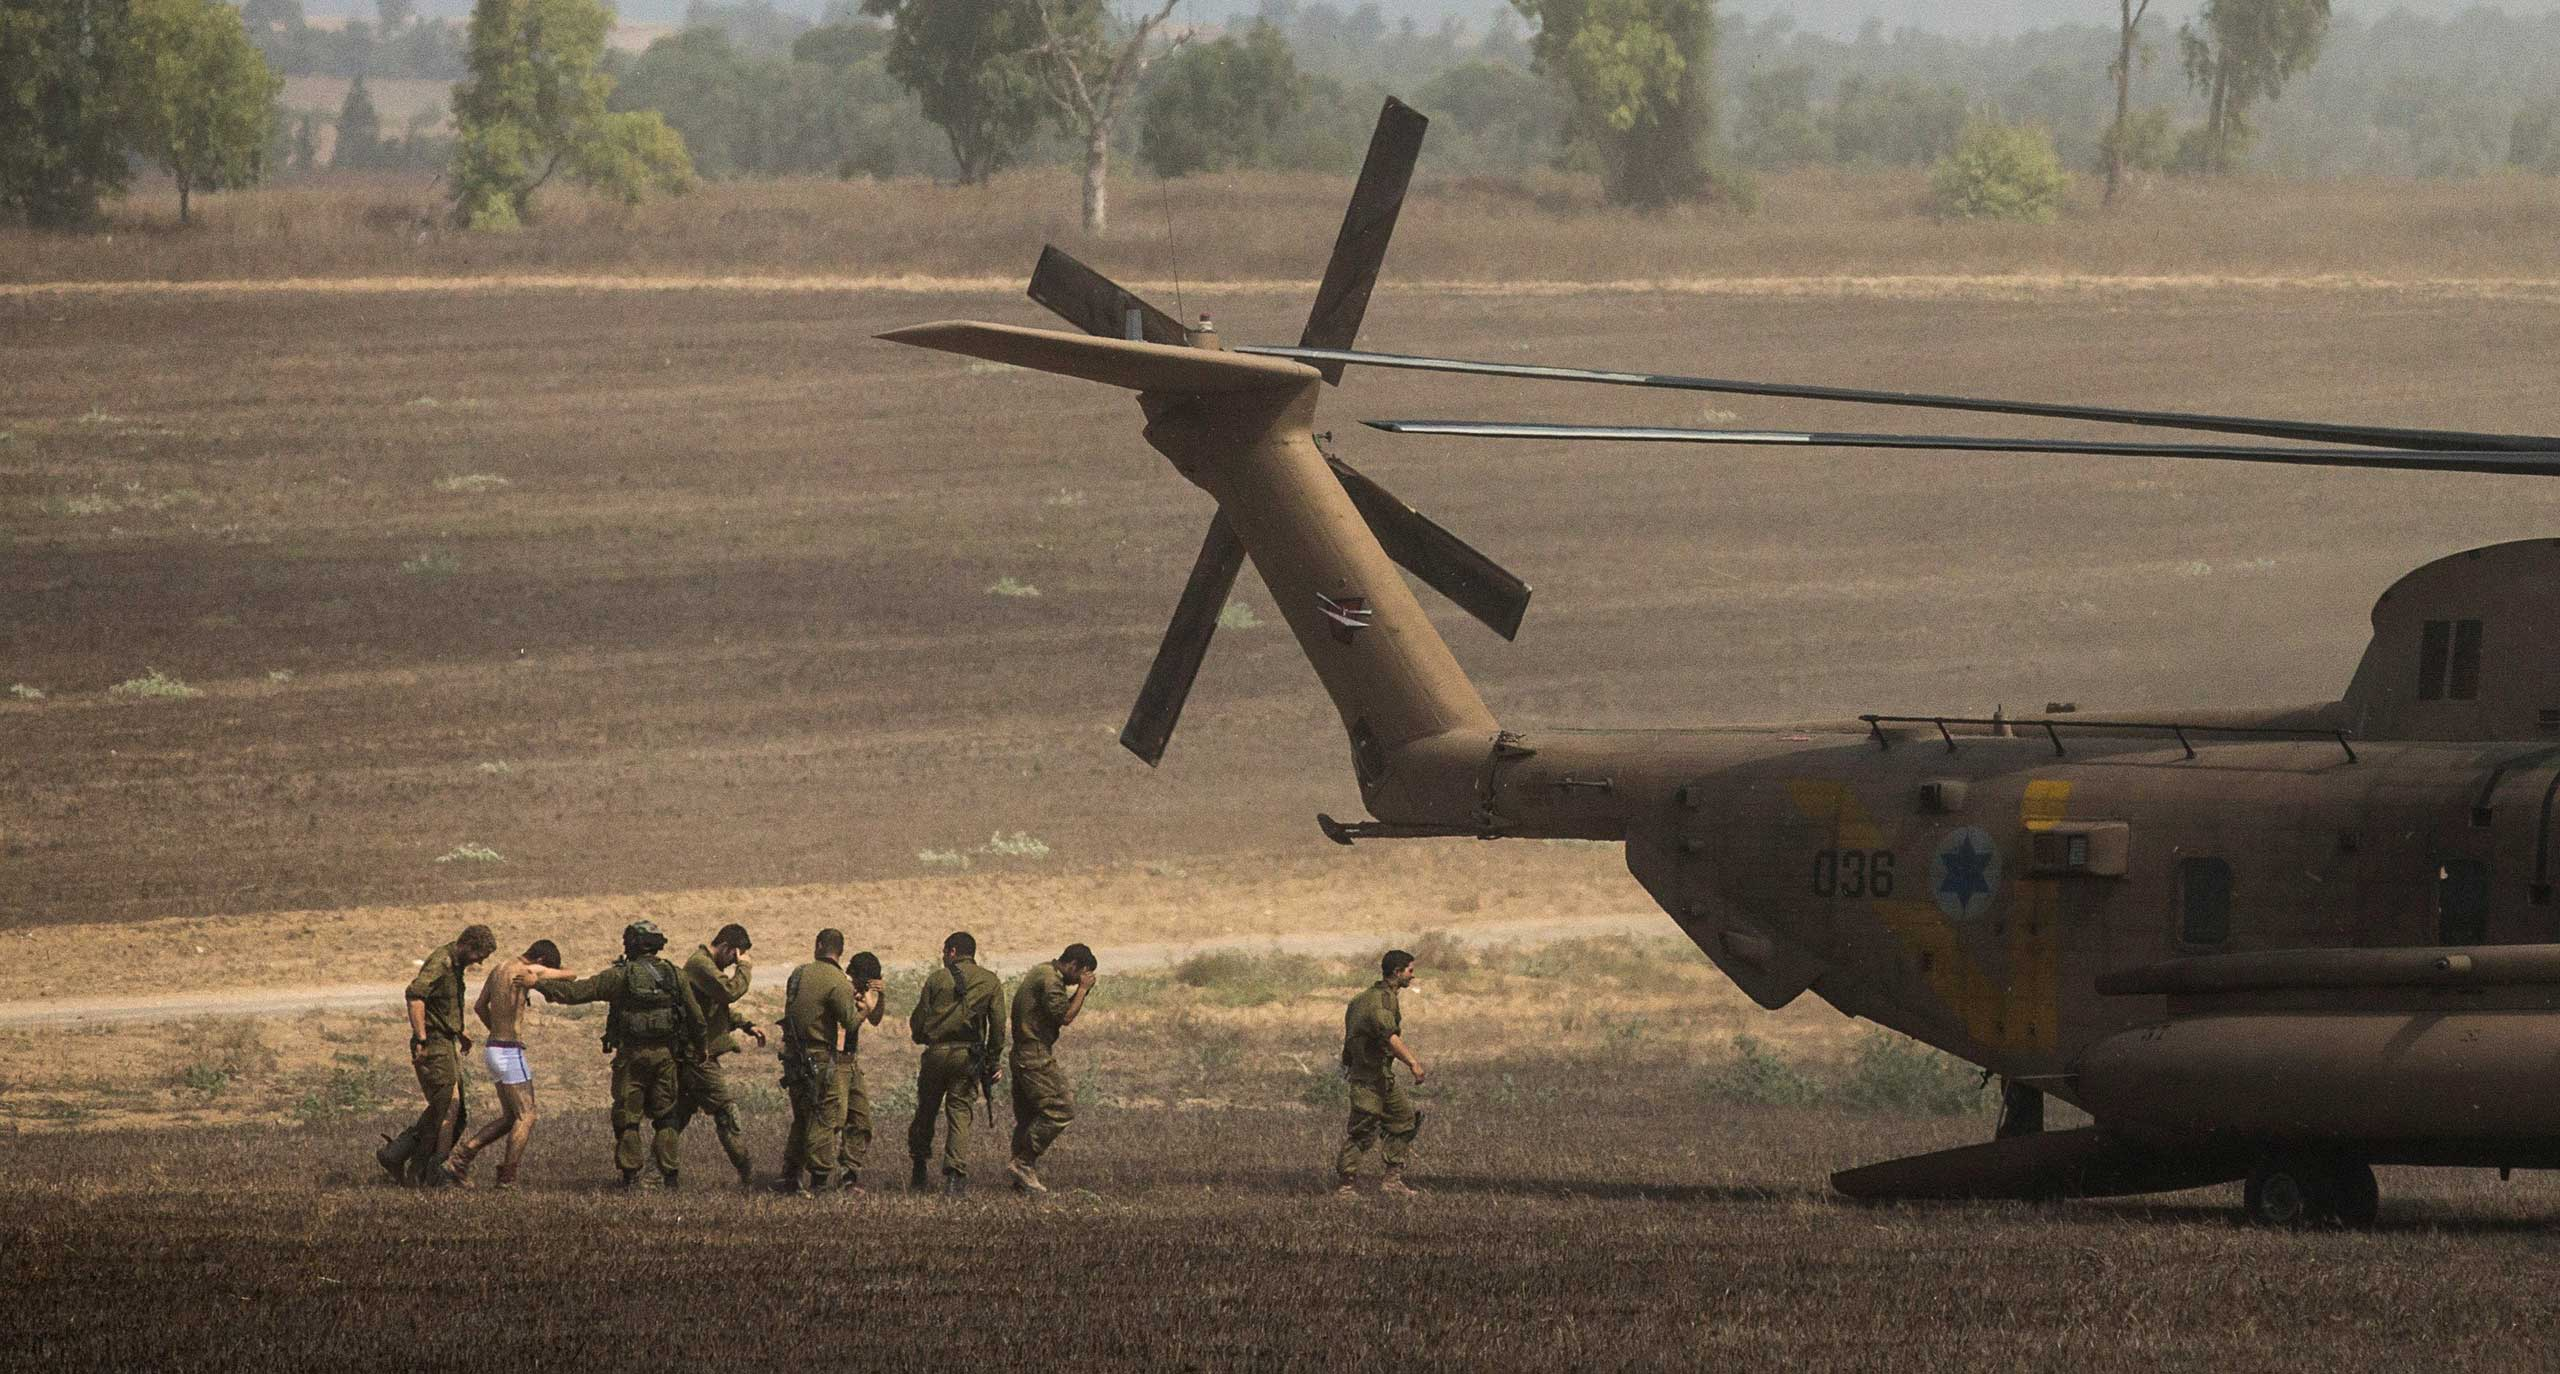 Wounded Israeli soldiers are brought to a helicopter near Kafar Aza, Israel, July 23, 2014.